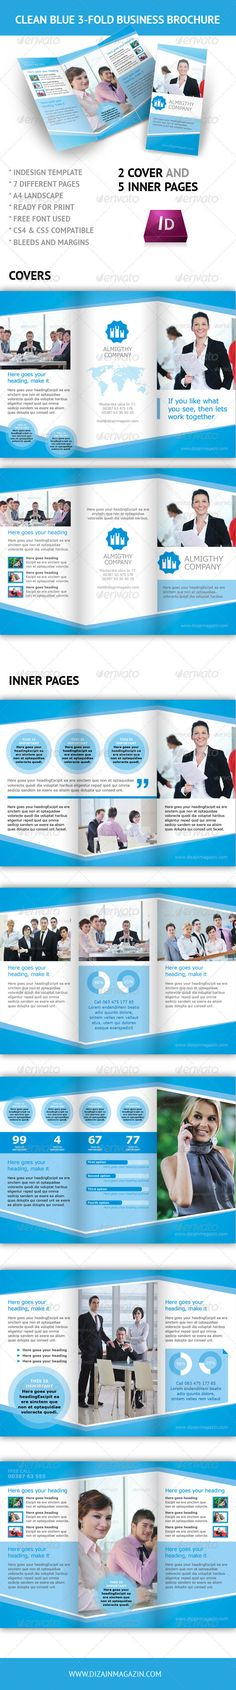 Clean Blue 3-fold Business Brochure - InDesign